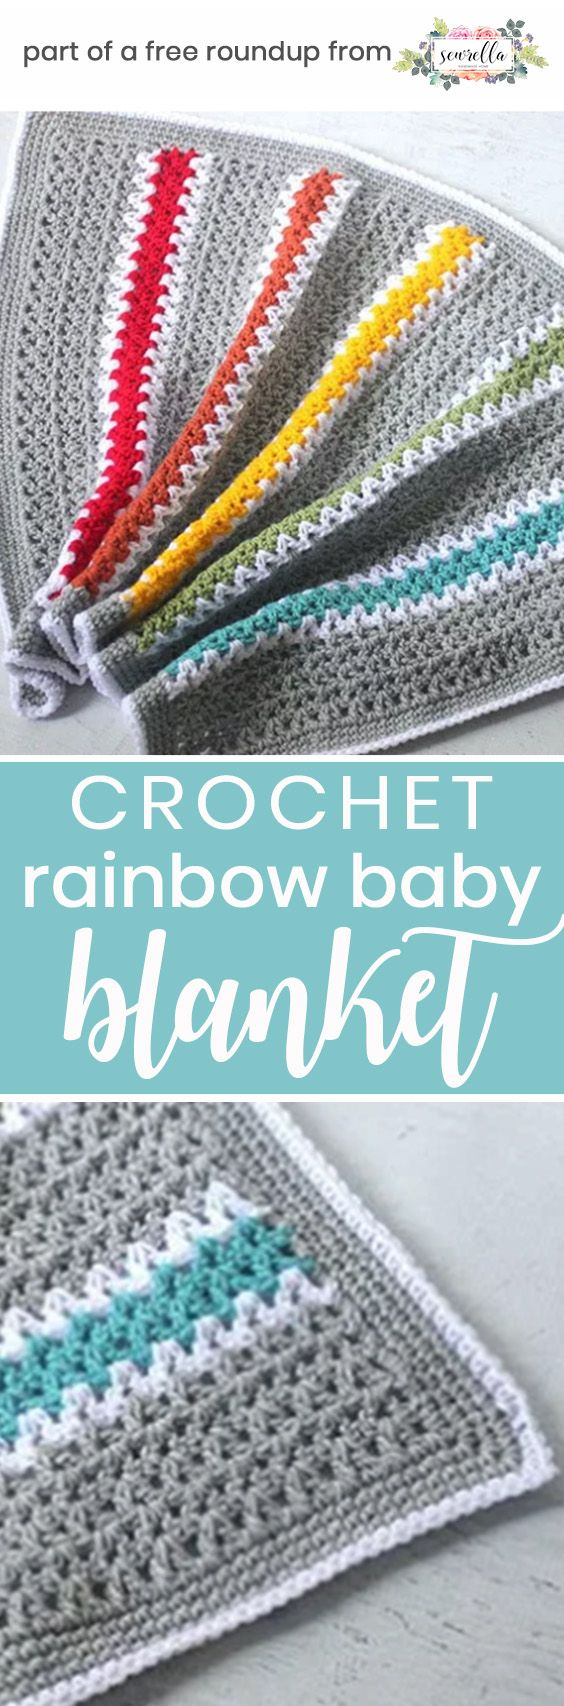 Get the free crochet pattern for this rainbow v-stitch stripes baby blanket from Repeat Crafter Me featured in my gender neutral baby blanket FREE pattern roundup!